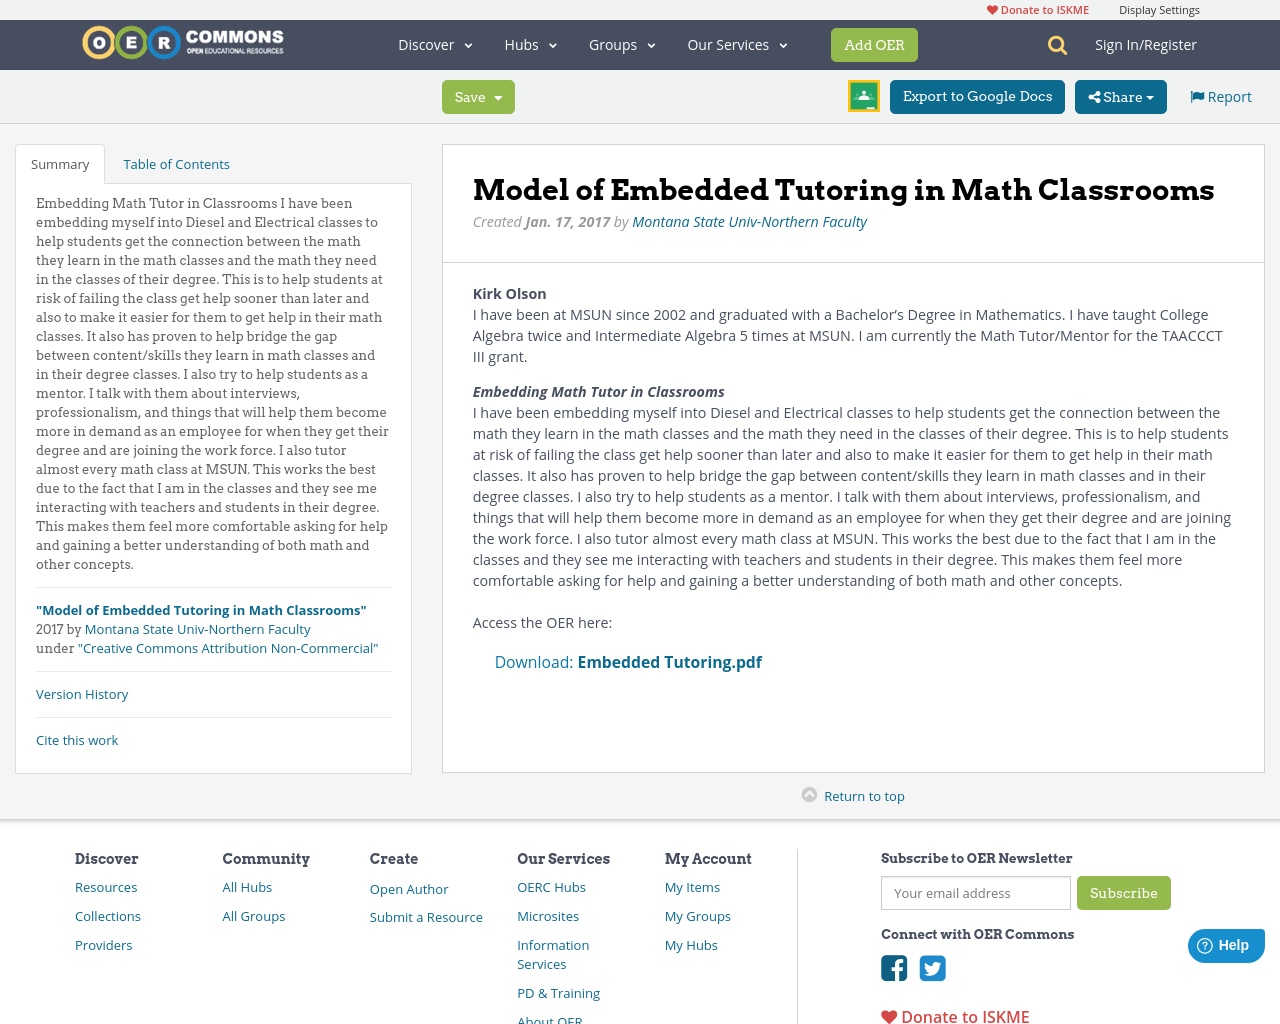 Model of Embedded Tutoring in Math Classrooms | OER Commons